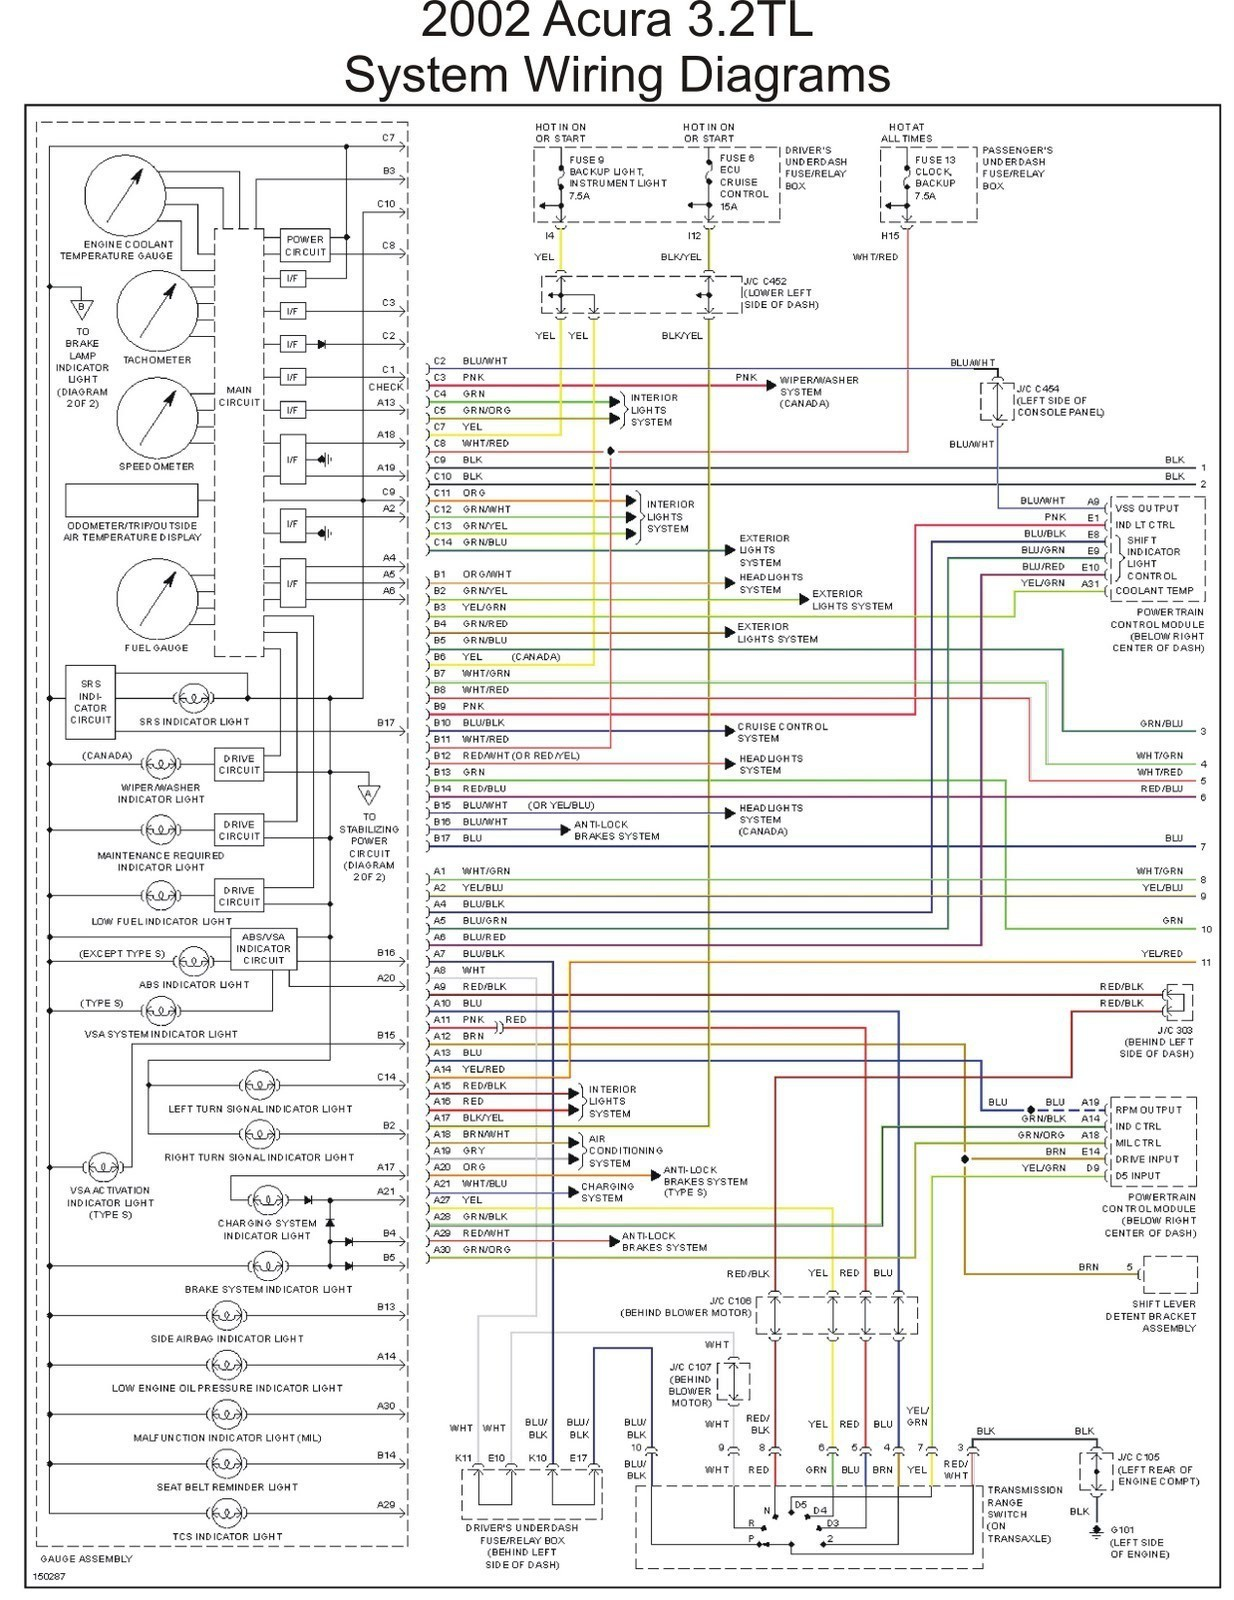 2006 Jeep Grand Cherokee Laredo Wiring Diagram